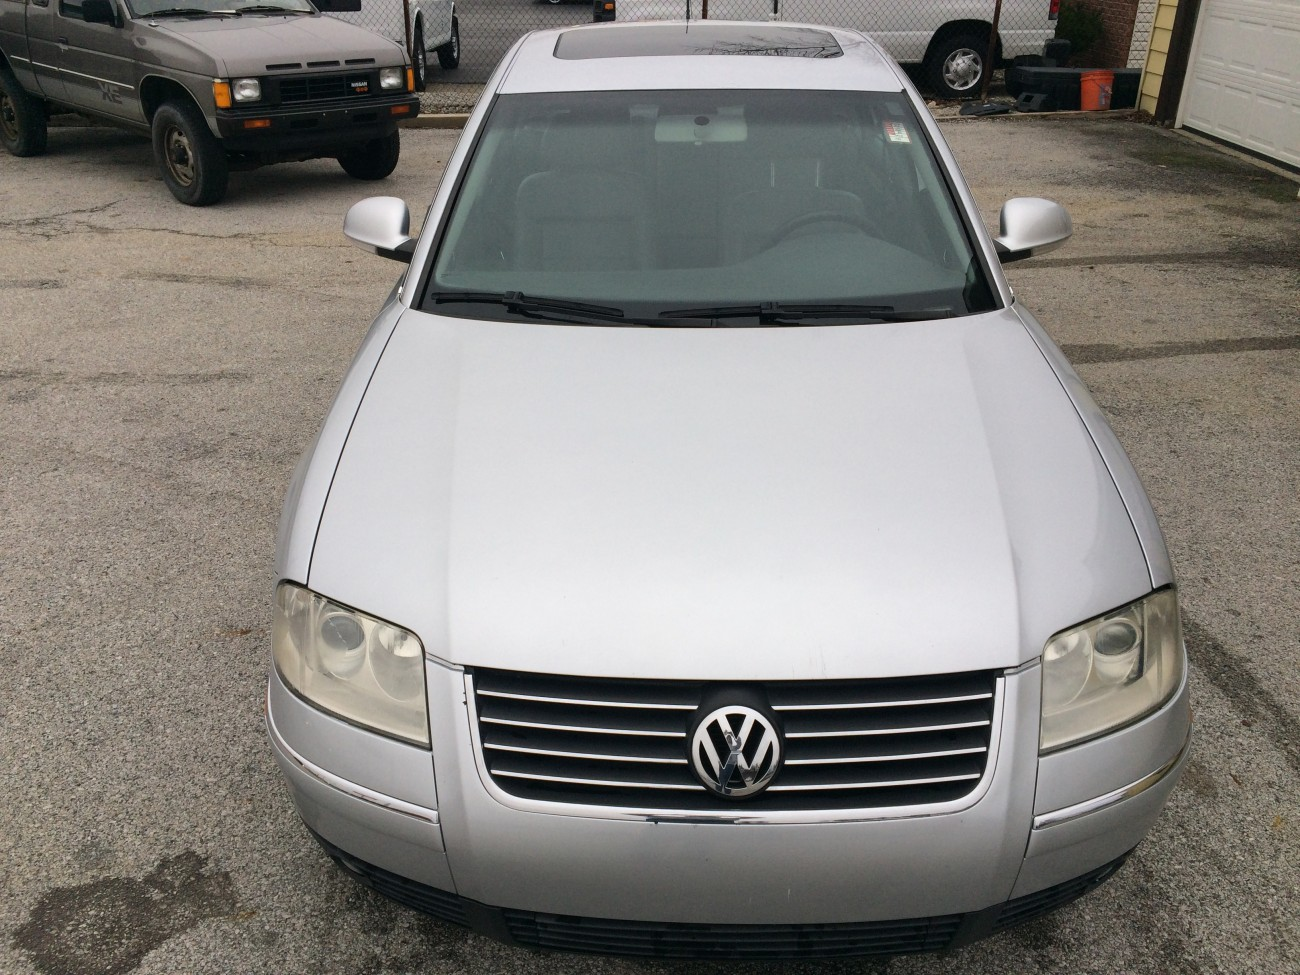 2005 vw passat automatic tdi diesel browse the lot speedway motors. Black Bedroom Furniture Sets. Home Design Ideas